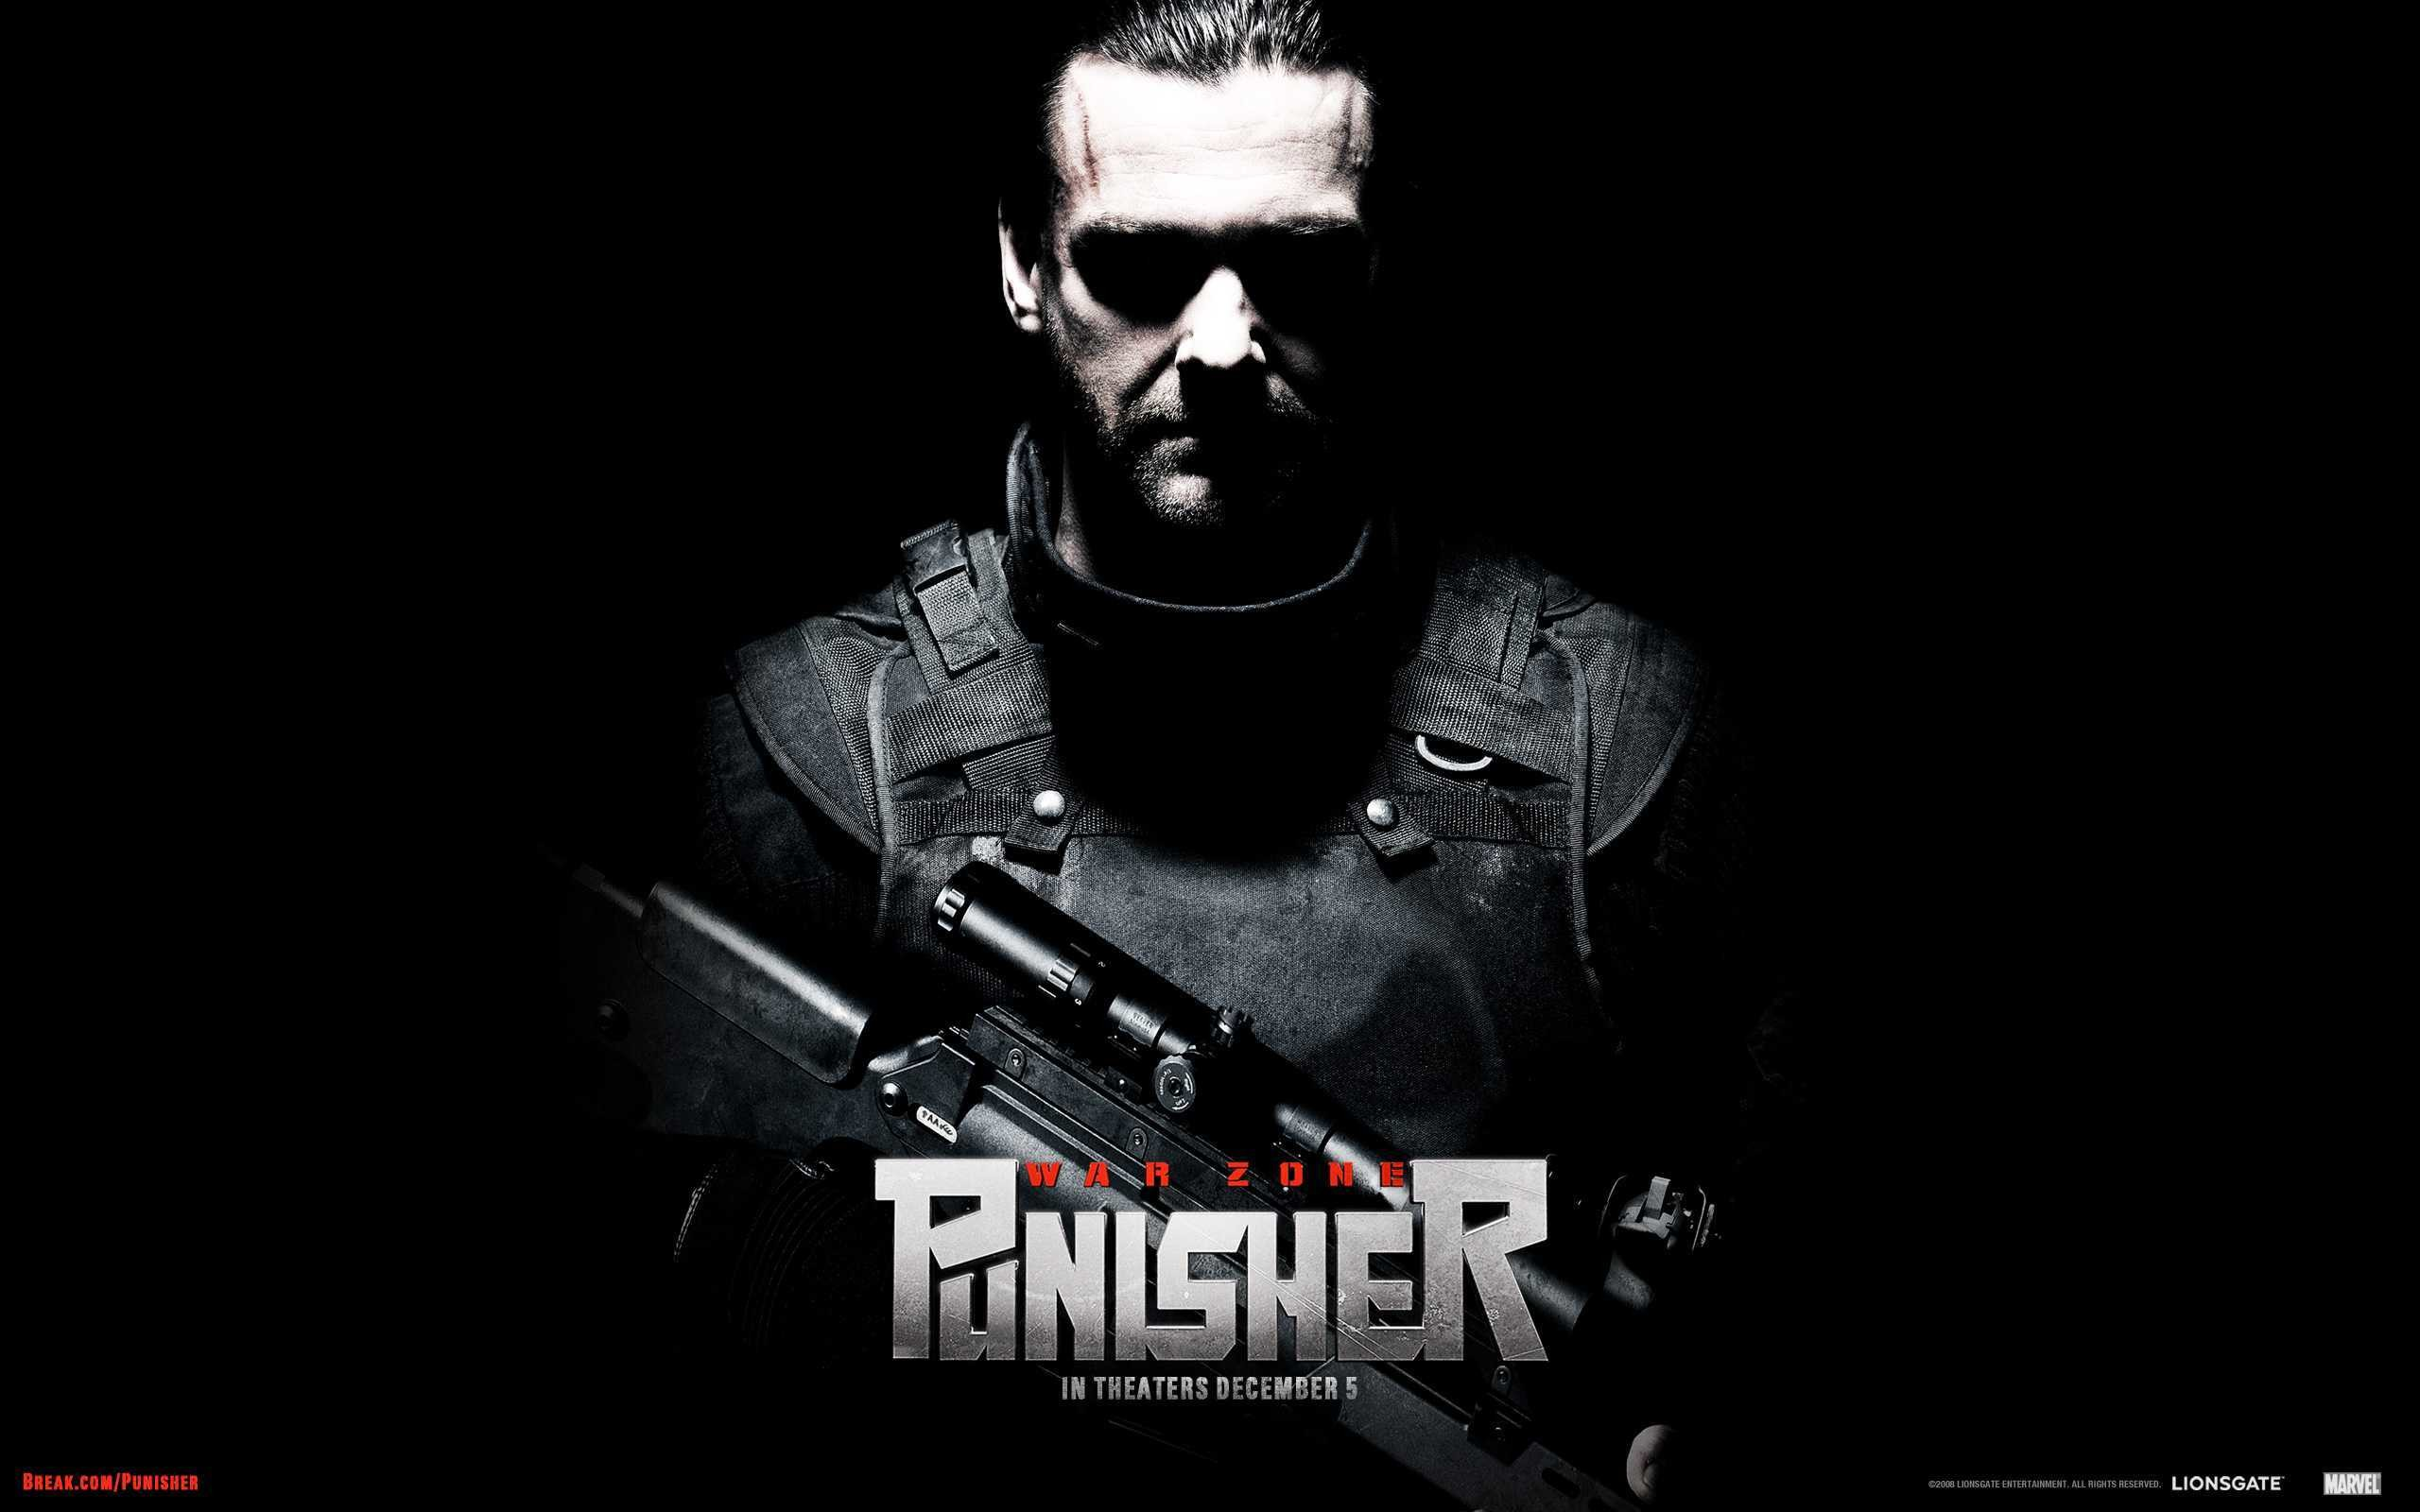 2560x1600 Punisher: War Zone (2008) • Rob Zombie – War Zone • Slayer – Final Six •  Slipknot – Psychosocial • Rise Against – Historia • Seether – Fallen